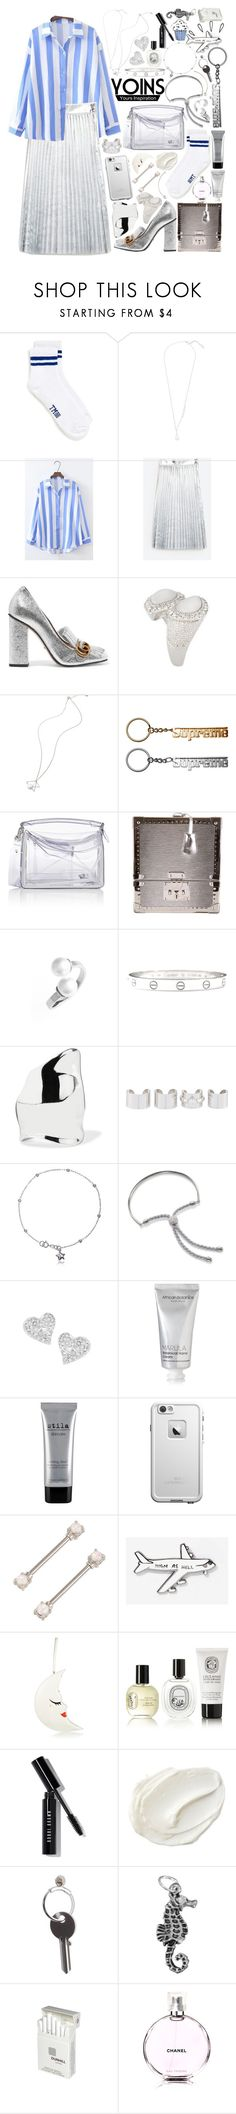 """""""Yoins: paris fashion week"""" by styling-w-mabel ❤ liked on Polyvore featuring Topman, Gucci, Loewe, Louis Vuitton, Rebecca Minkoff, Cartier, Sophie Buhai, Maison Margiela, Monica Vinader and Vivienne Westwood"""